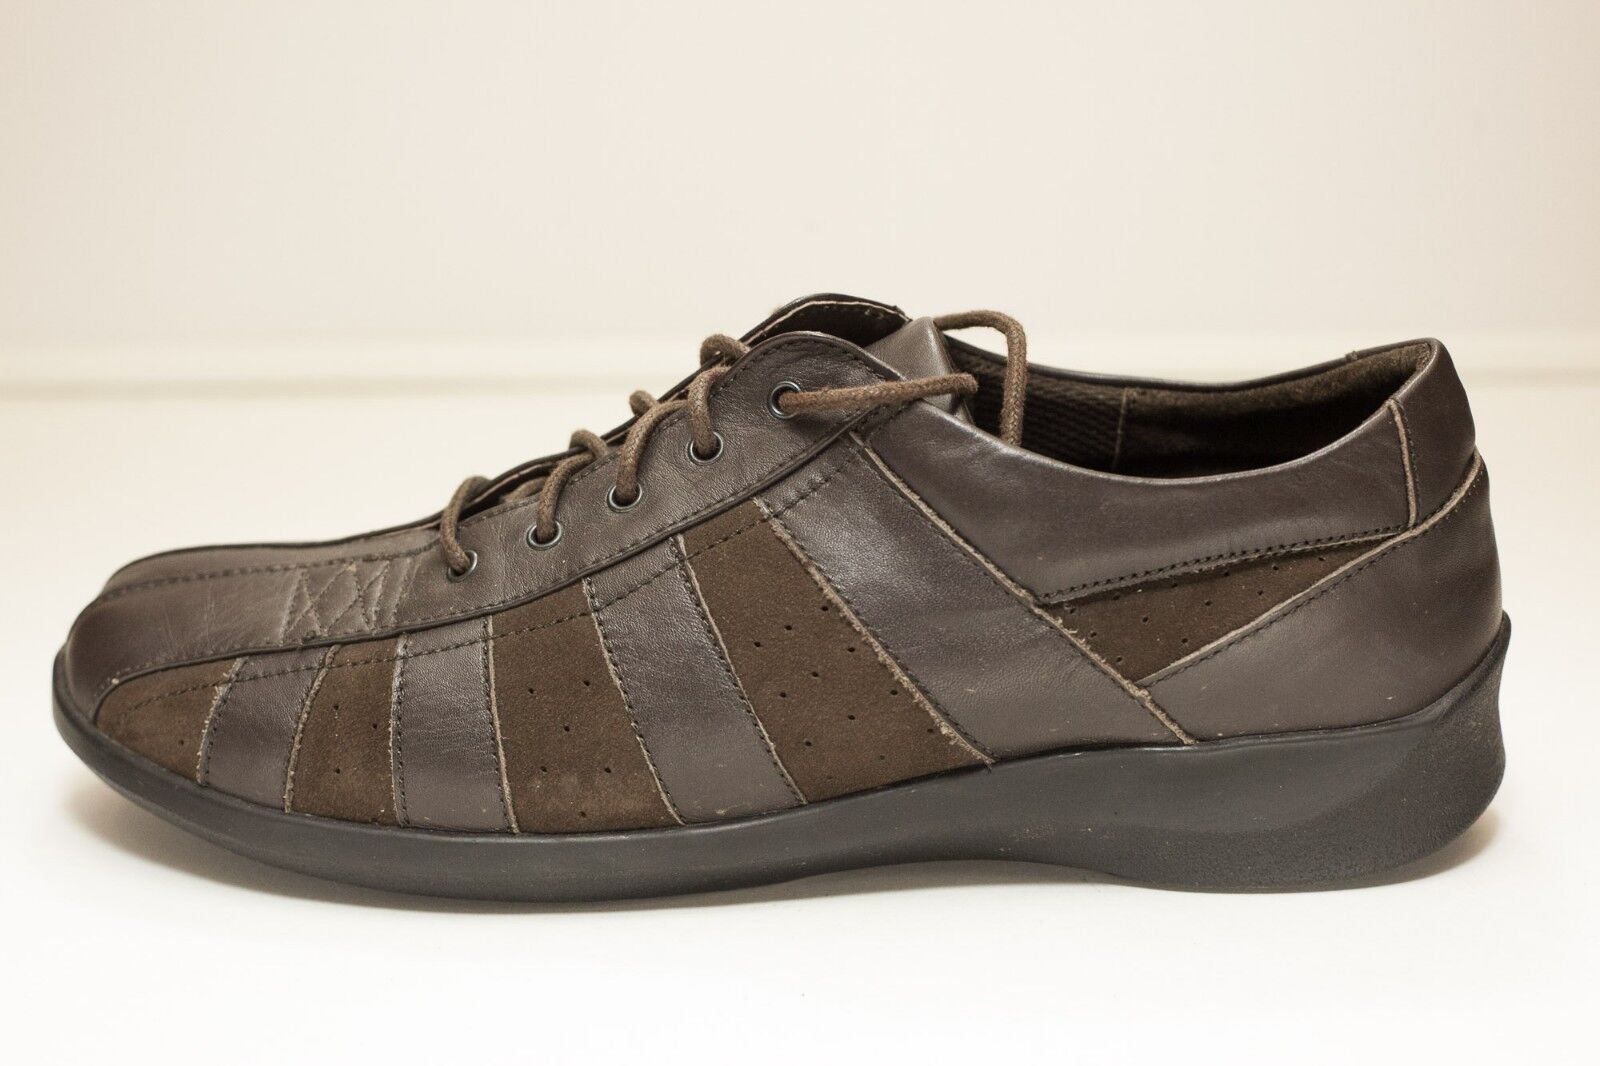 Aetrex Size 10.5 Brown Lace Up Flats Women's